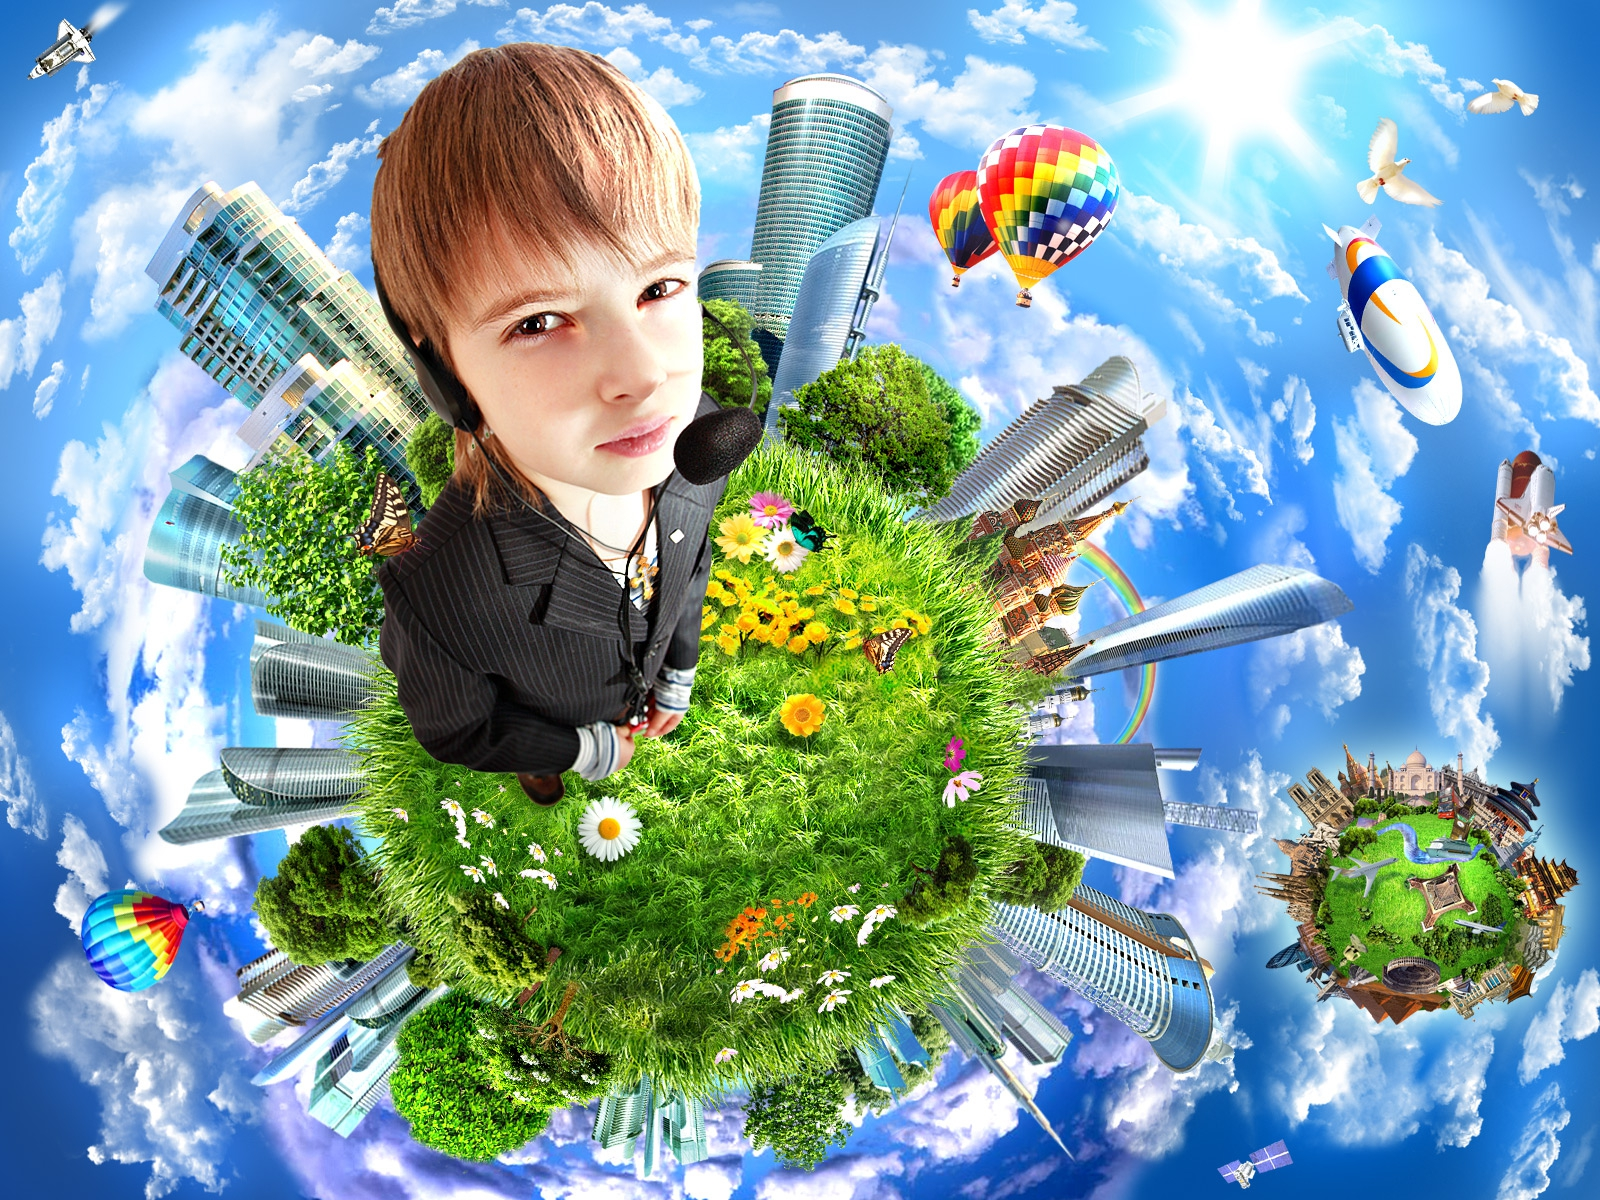 wallpapers_ru_teo_linka_1600x1200_boy_on_the_planet